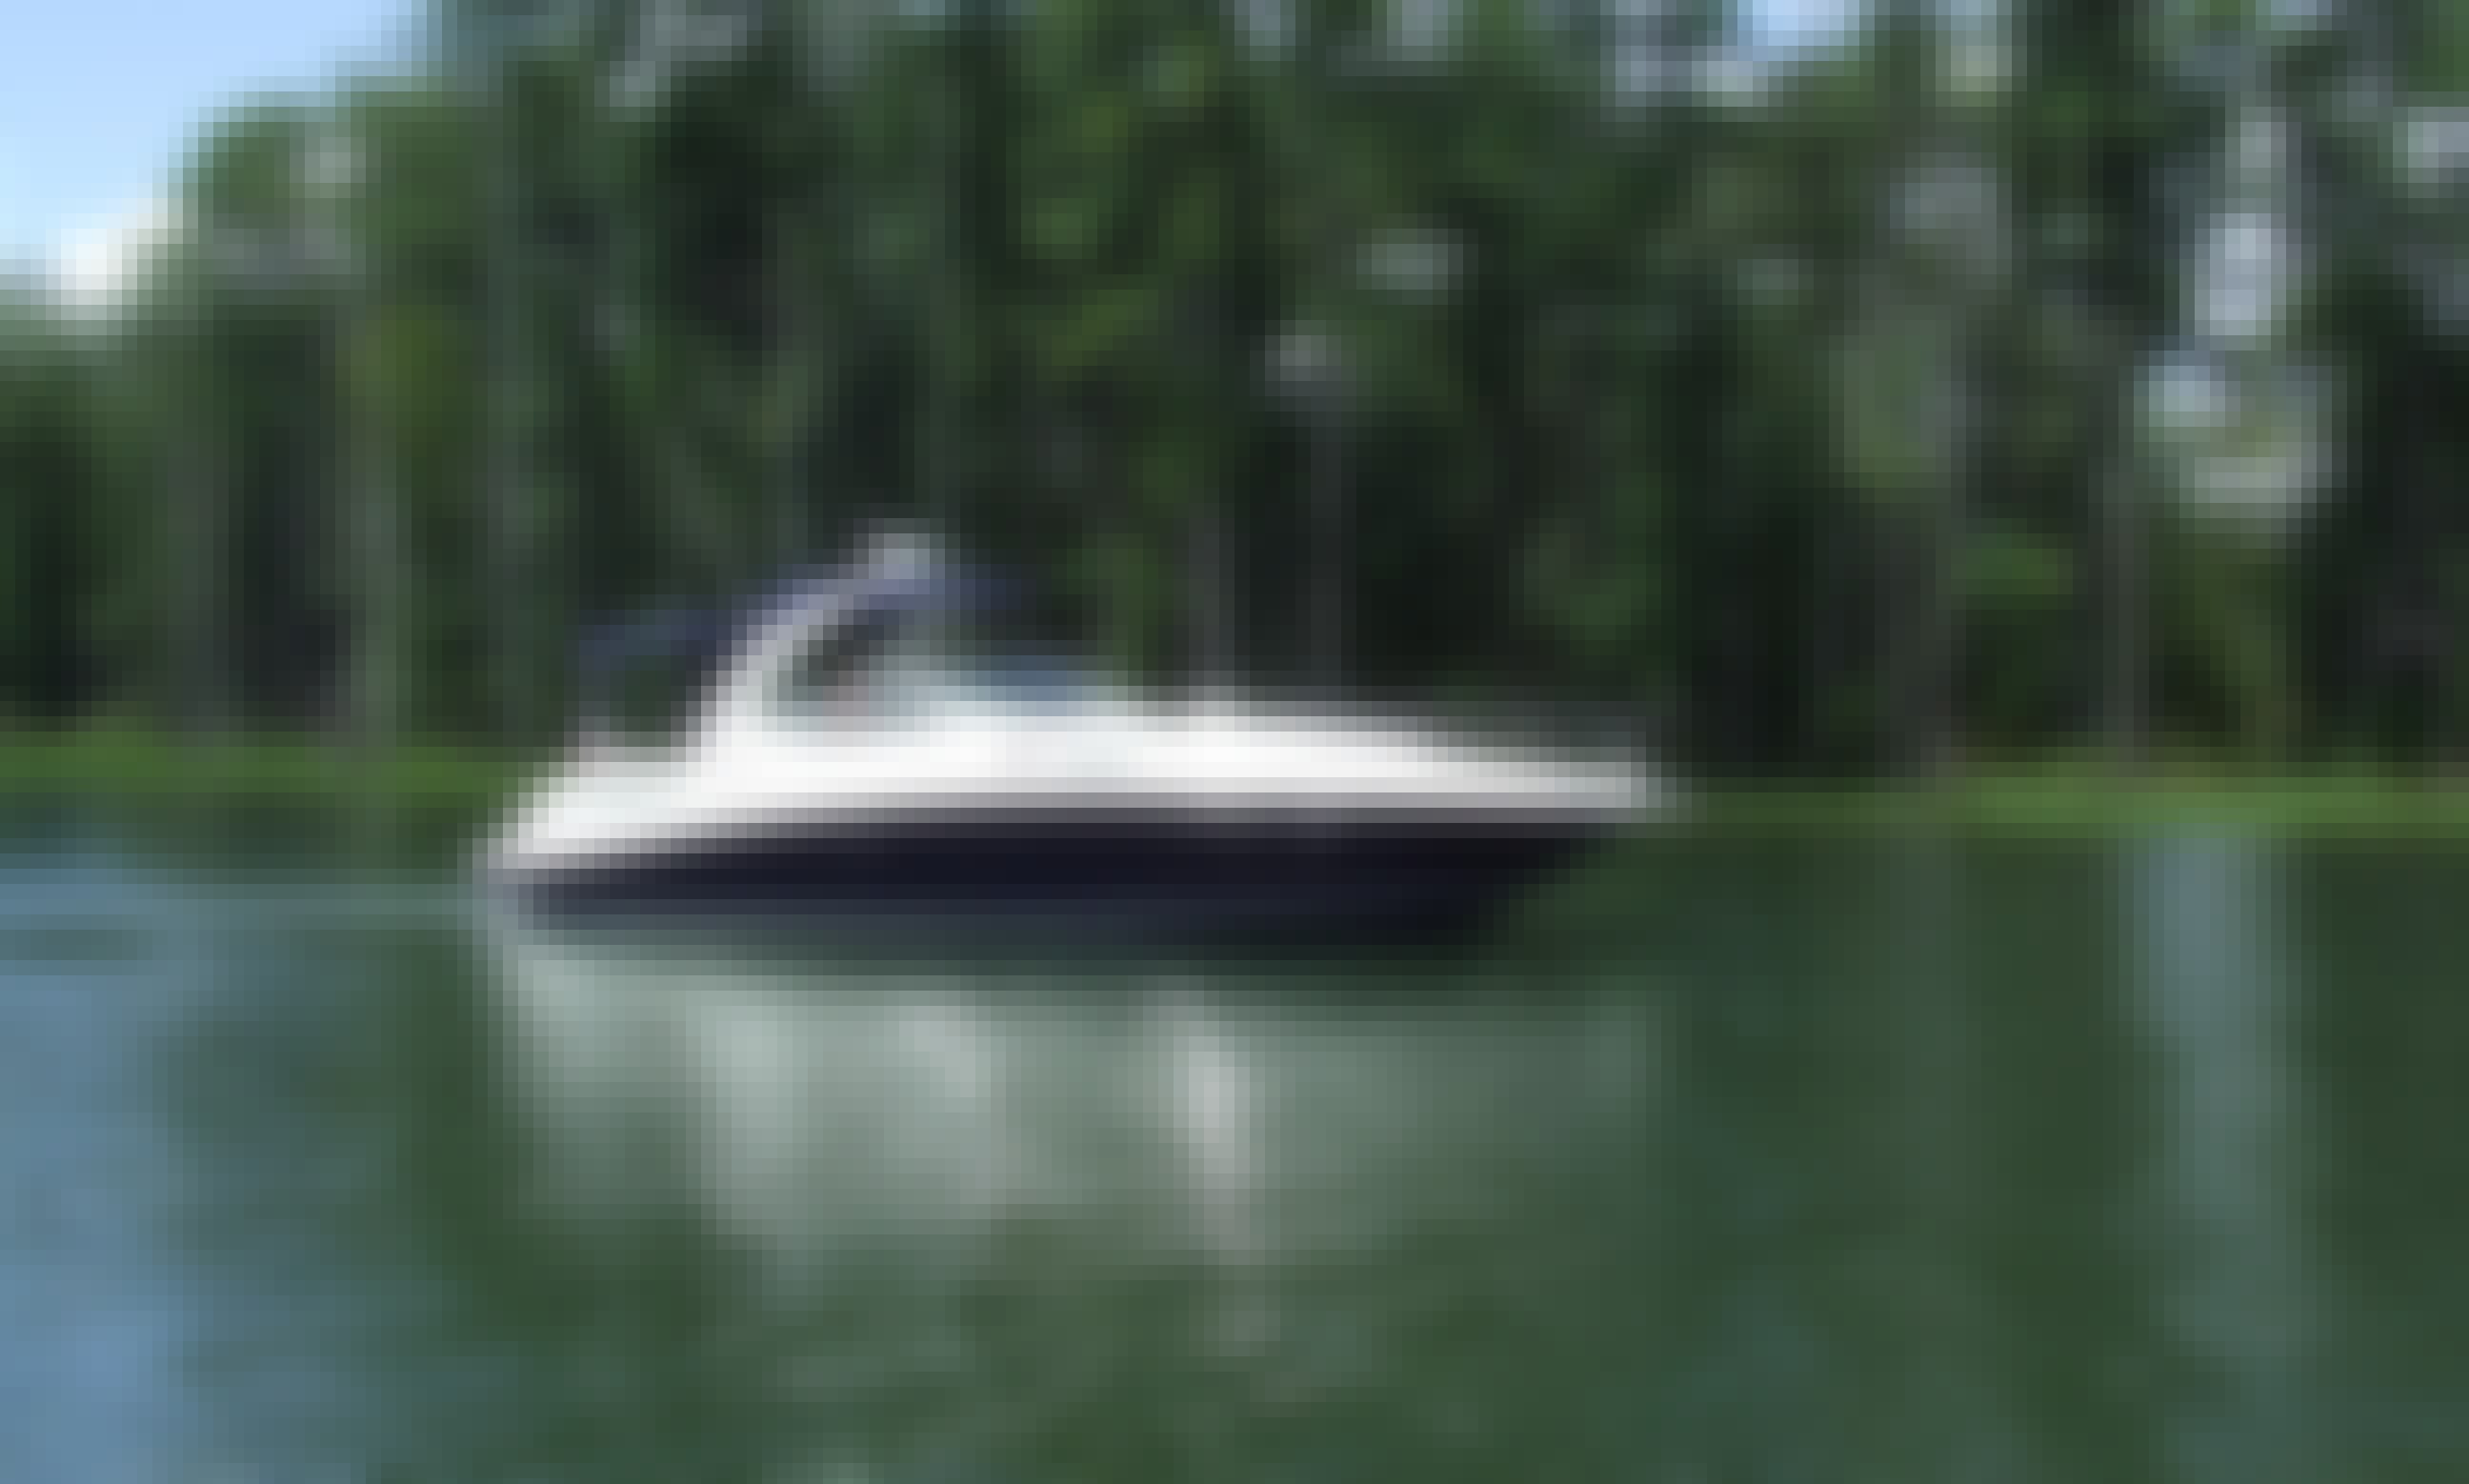 34' SeaRay Luxury Yacht Tours on Beautiful Lake Murray with Captain John